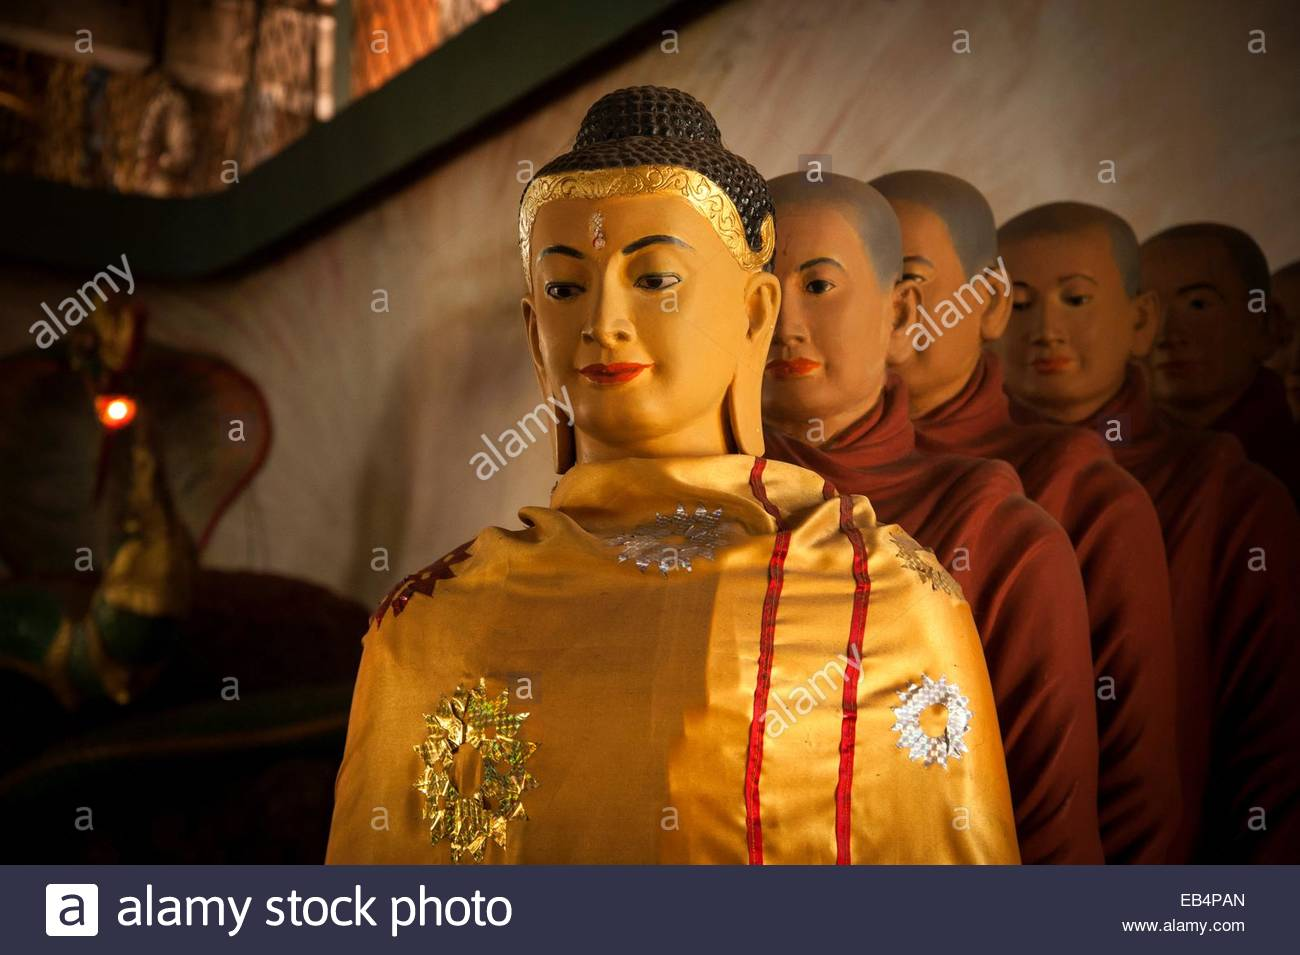 Statues of Buddha draped in saffron robes at the Ngadatkyi Pagoda. - Stock Image